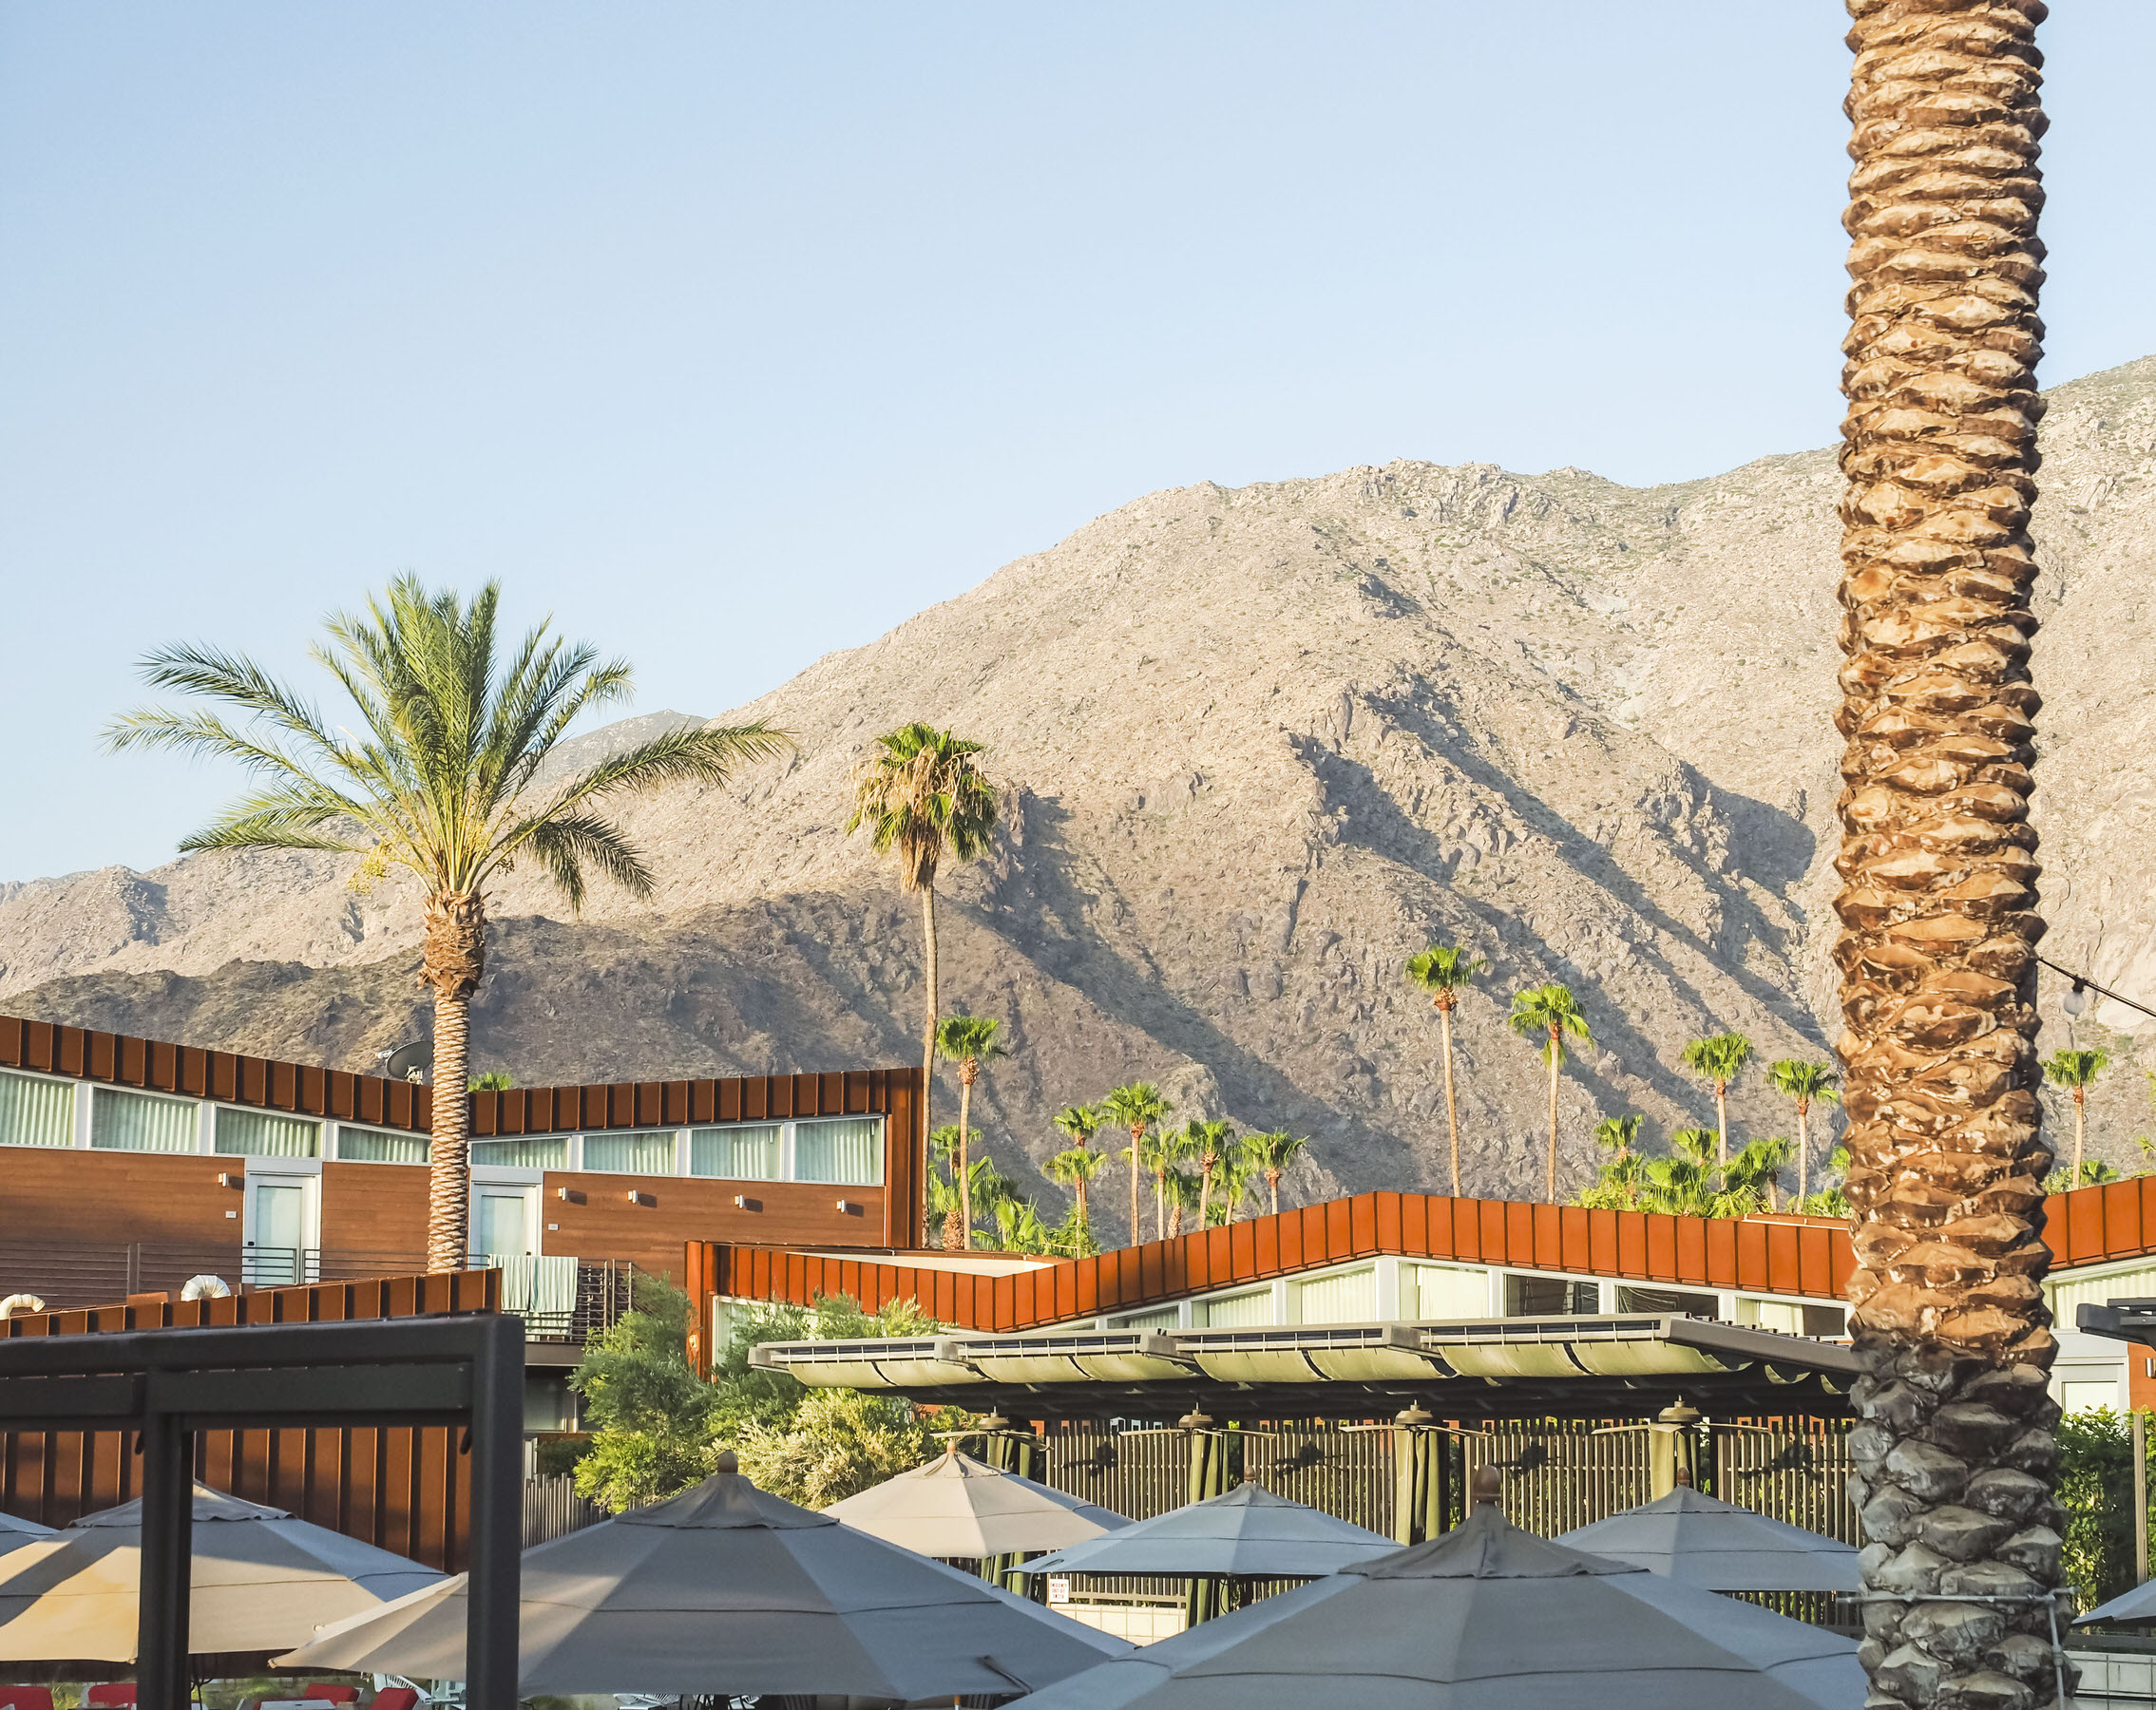 There are many chic boutique hotels in Palm Springs but the Arrive Hotel is one of the most beautiful. With a view of the mountains, an amazing pool and adorable ice cream shop, this is definitely where to stay in Palm Springs! #california #hotel #traveldestinations